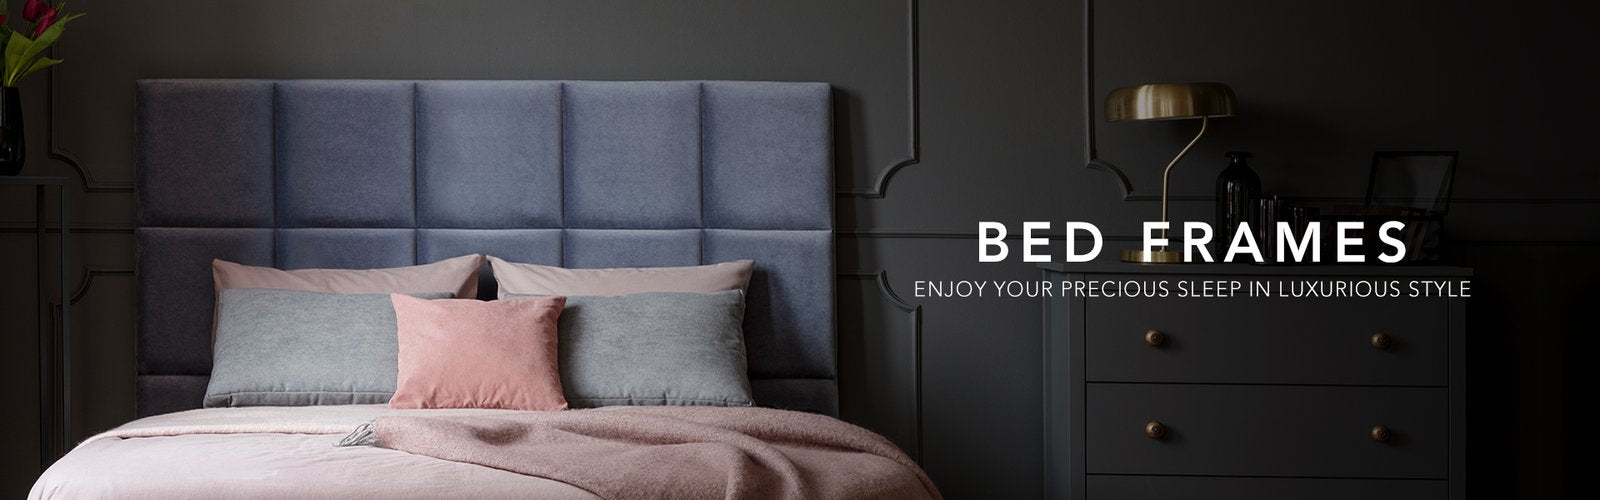 bed-frames-bitpay-bitcoin